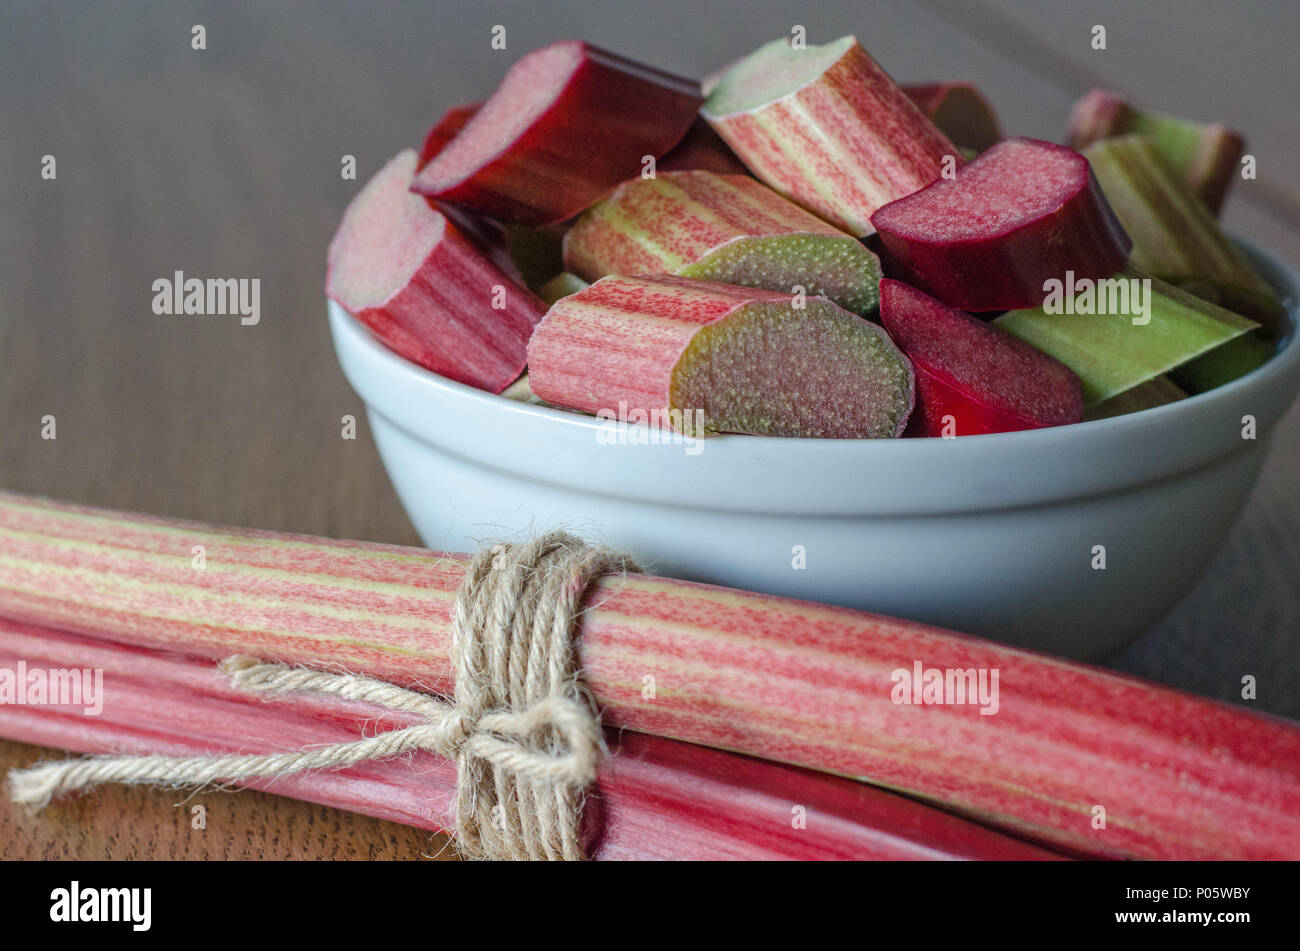 Close-up of slised rhubarb in a bowl on wooden background - Stock Image